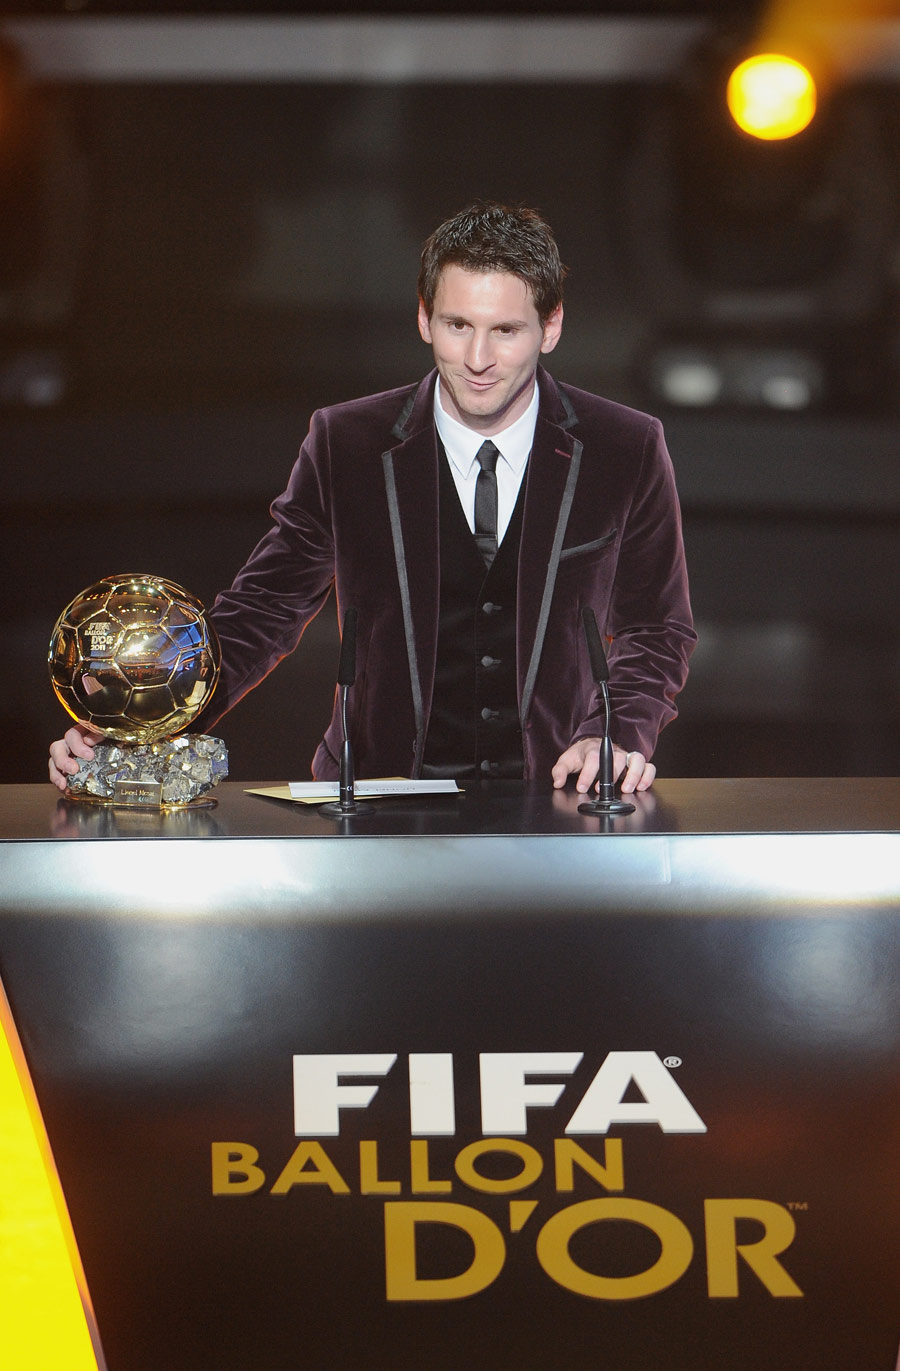 Another FIFA Ballon DOr For Lionel Messi